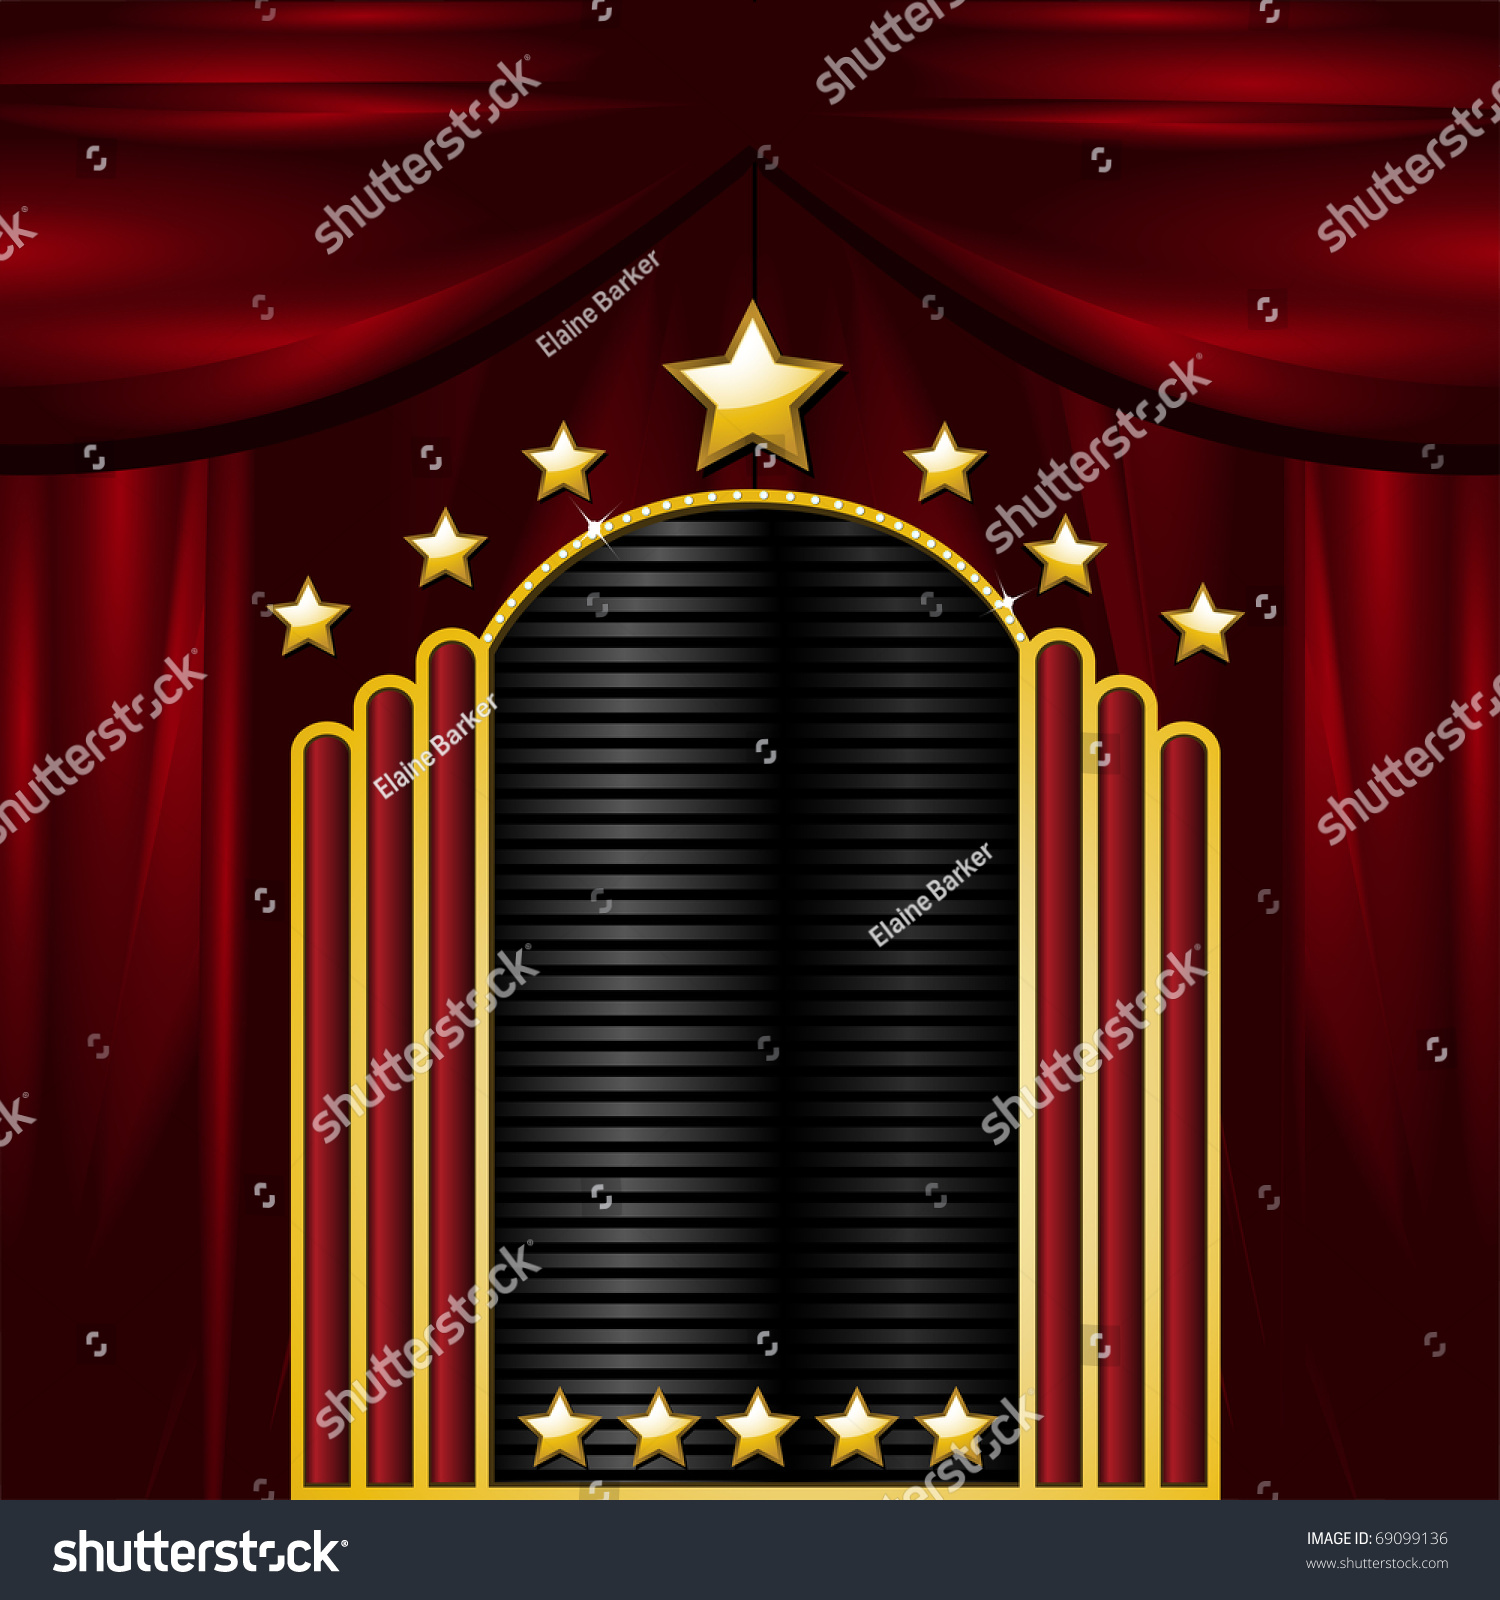 Black theatre curtain - Black And Gold Theatre Sign On A Red Curtain Background